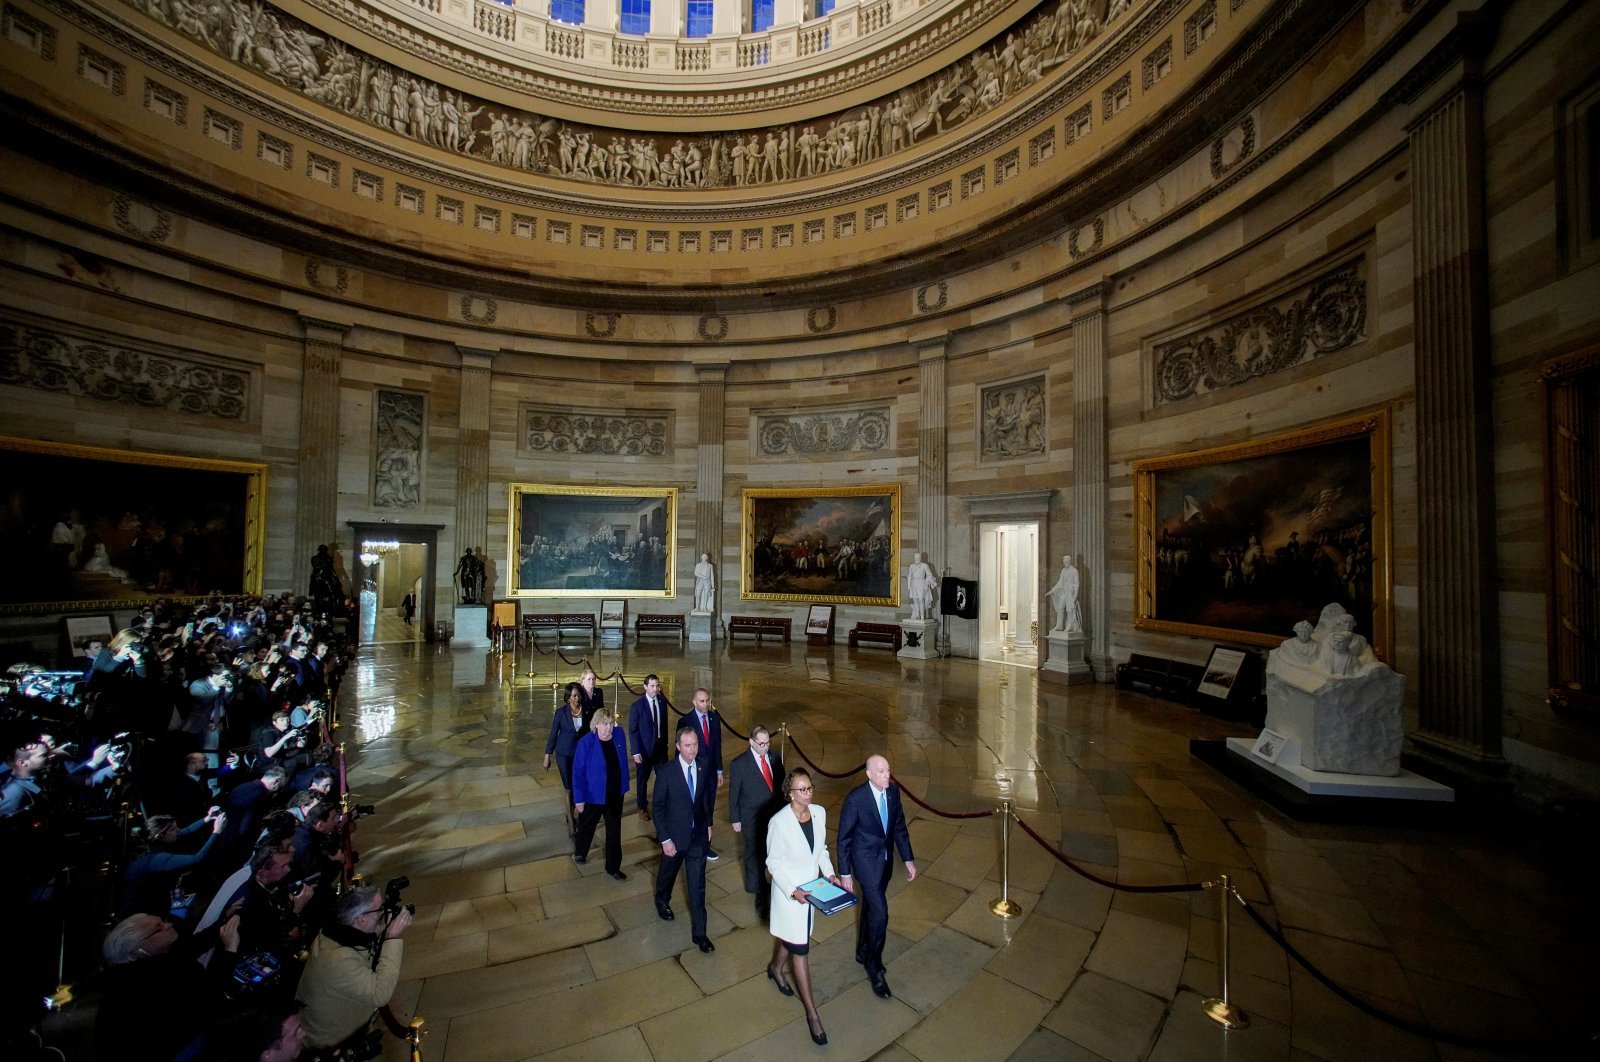 House Sergeant at Arms Paul Irving and House Clerk Cheryl Johnson carry two articles of impeachment against U.S. President Donald Trump during a procession with the seven House impeachment managers through the Rotunda of the U.S. Capitol to the U.S. Senate in Washington, U.S., Jan. 15, 2020. (Reuters Photo)